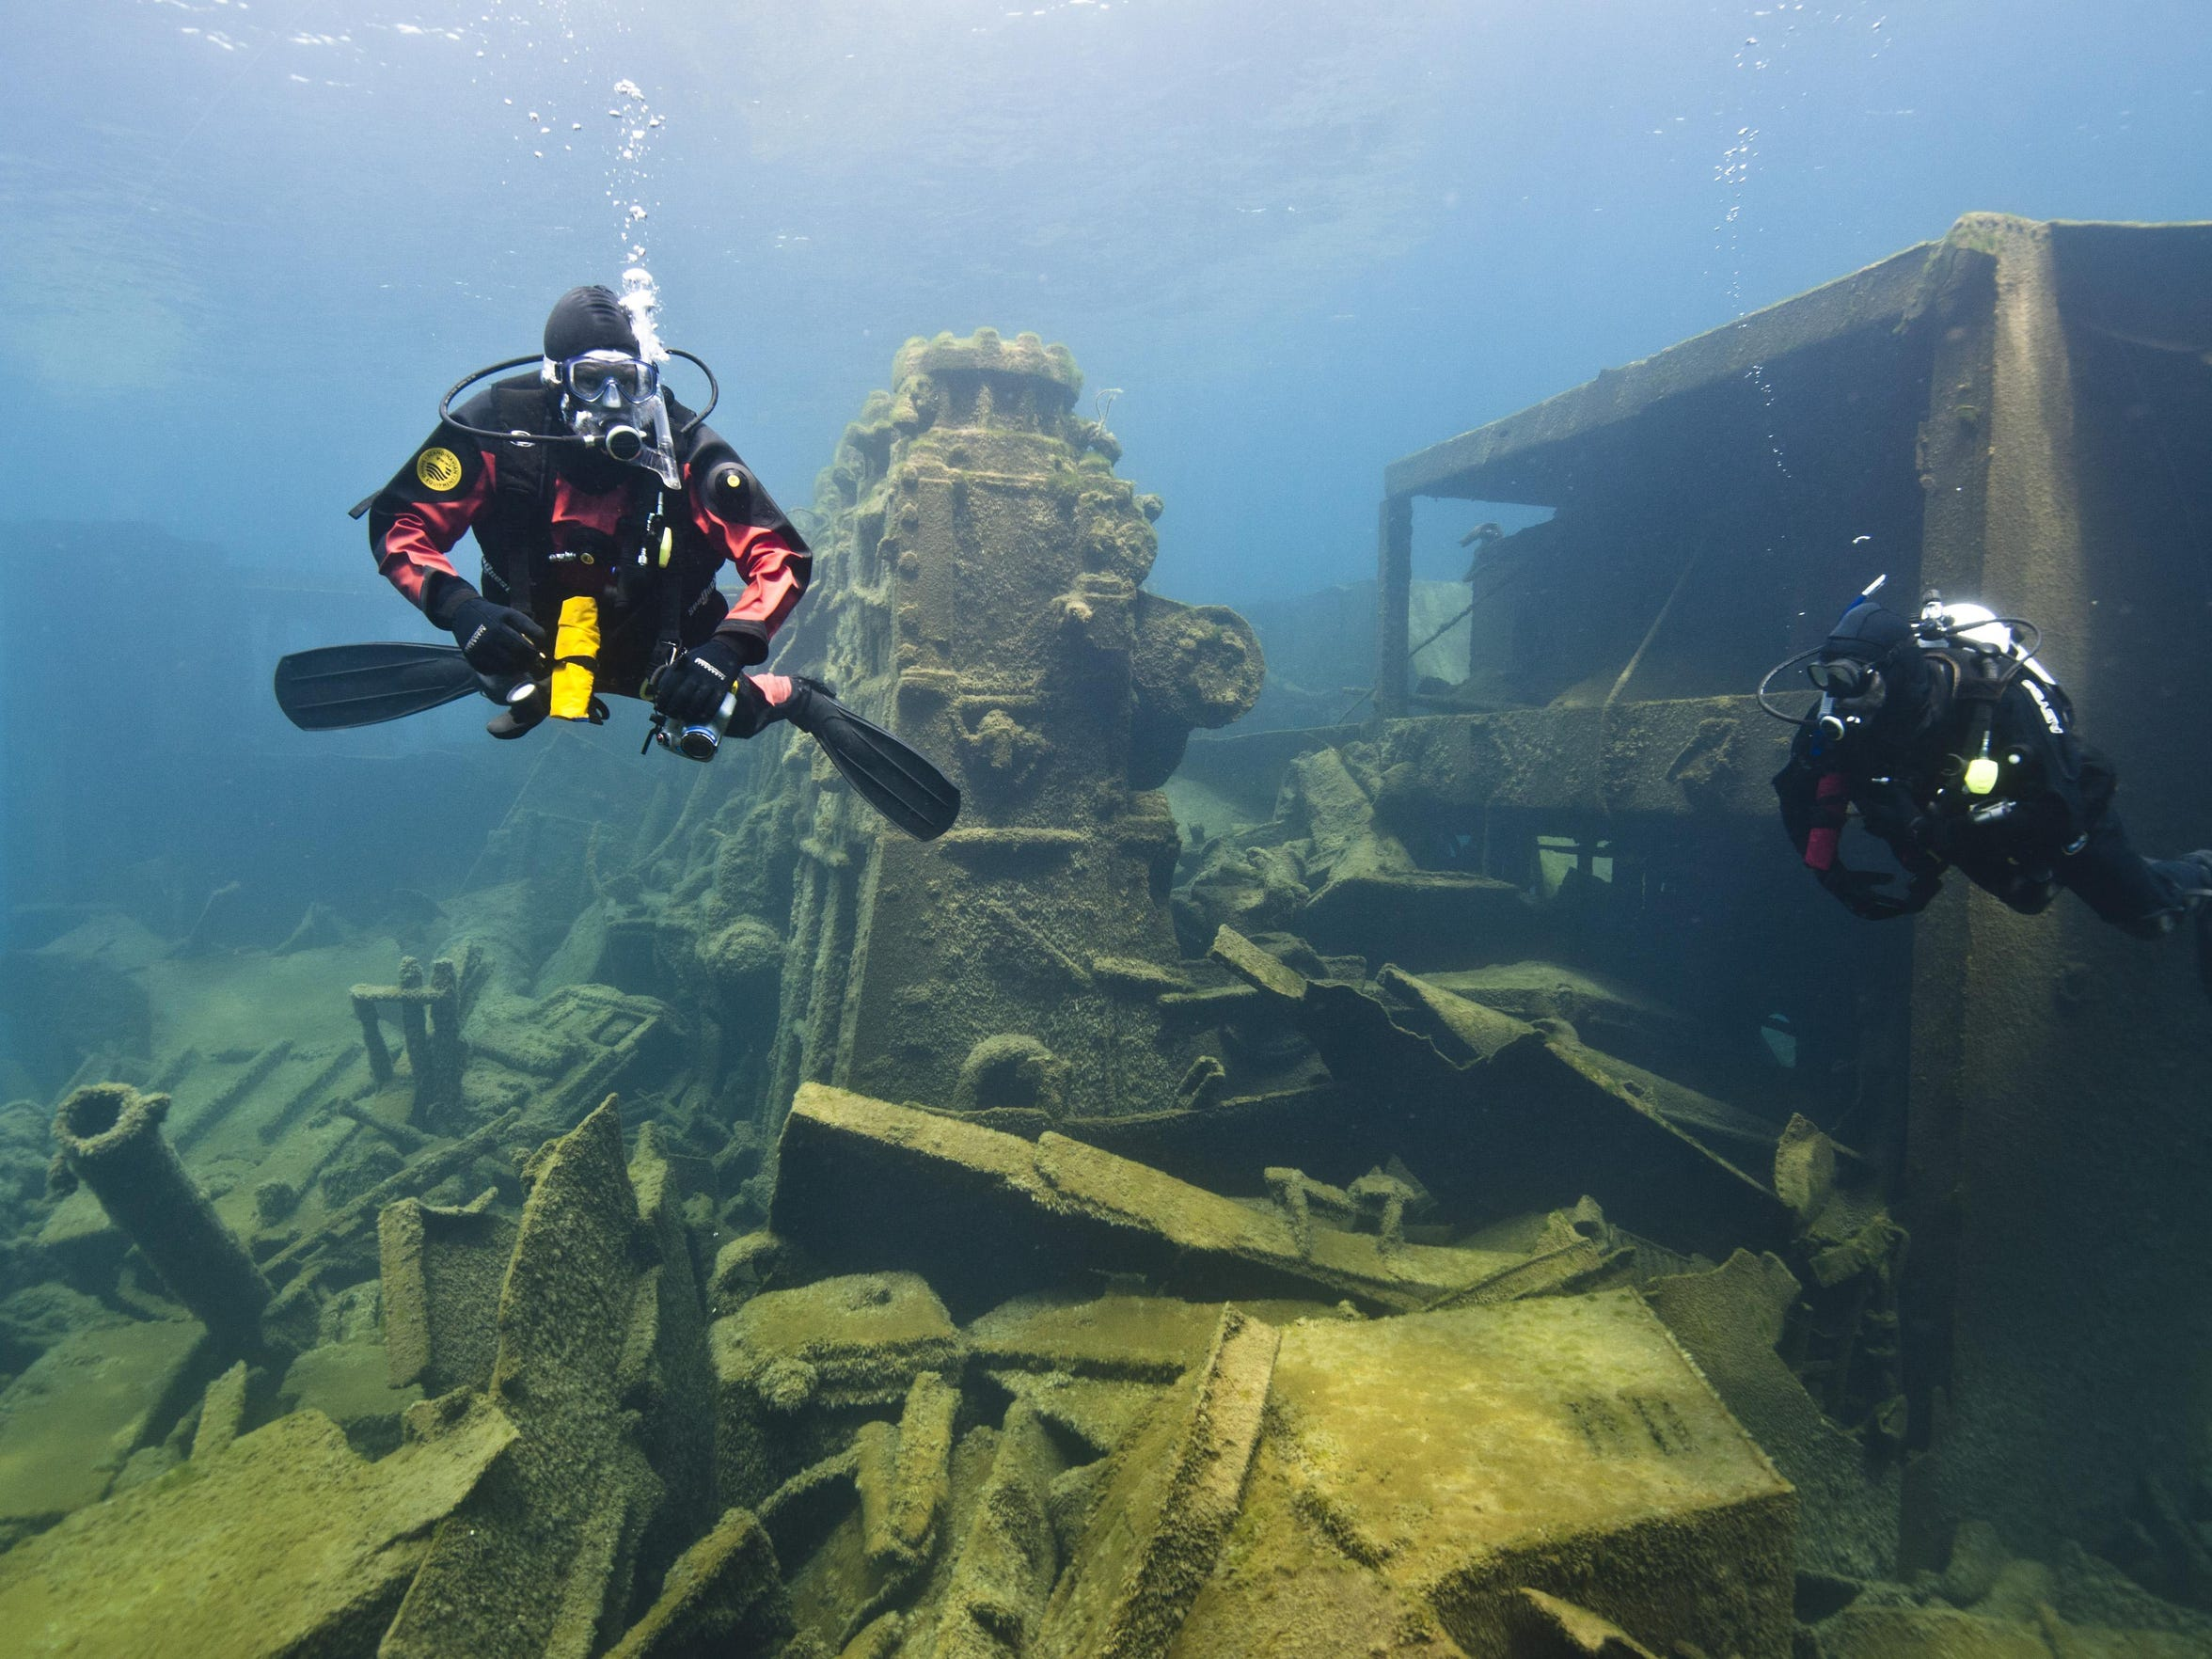 Michigan's shipwrecks tell stories